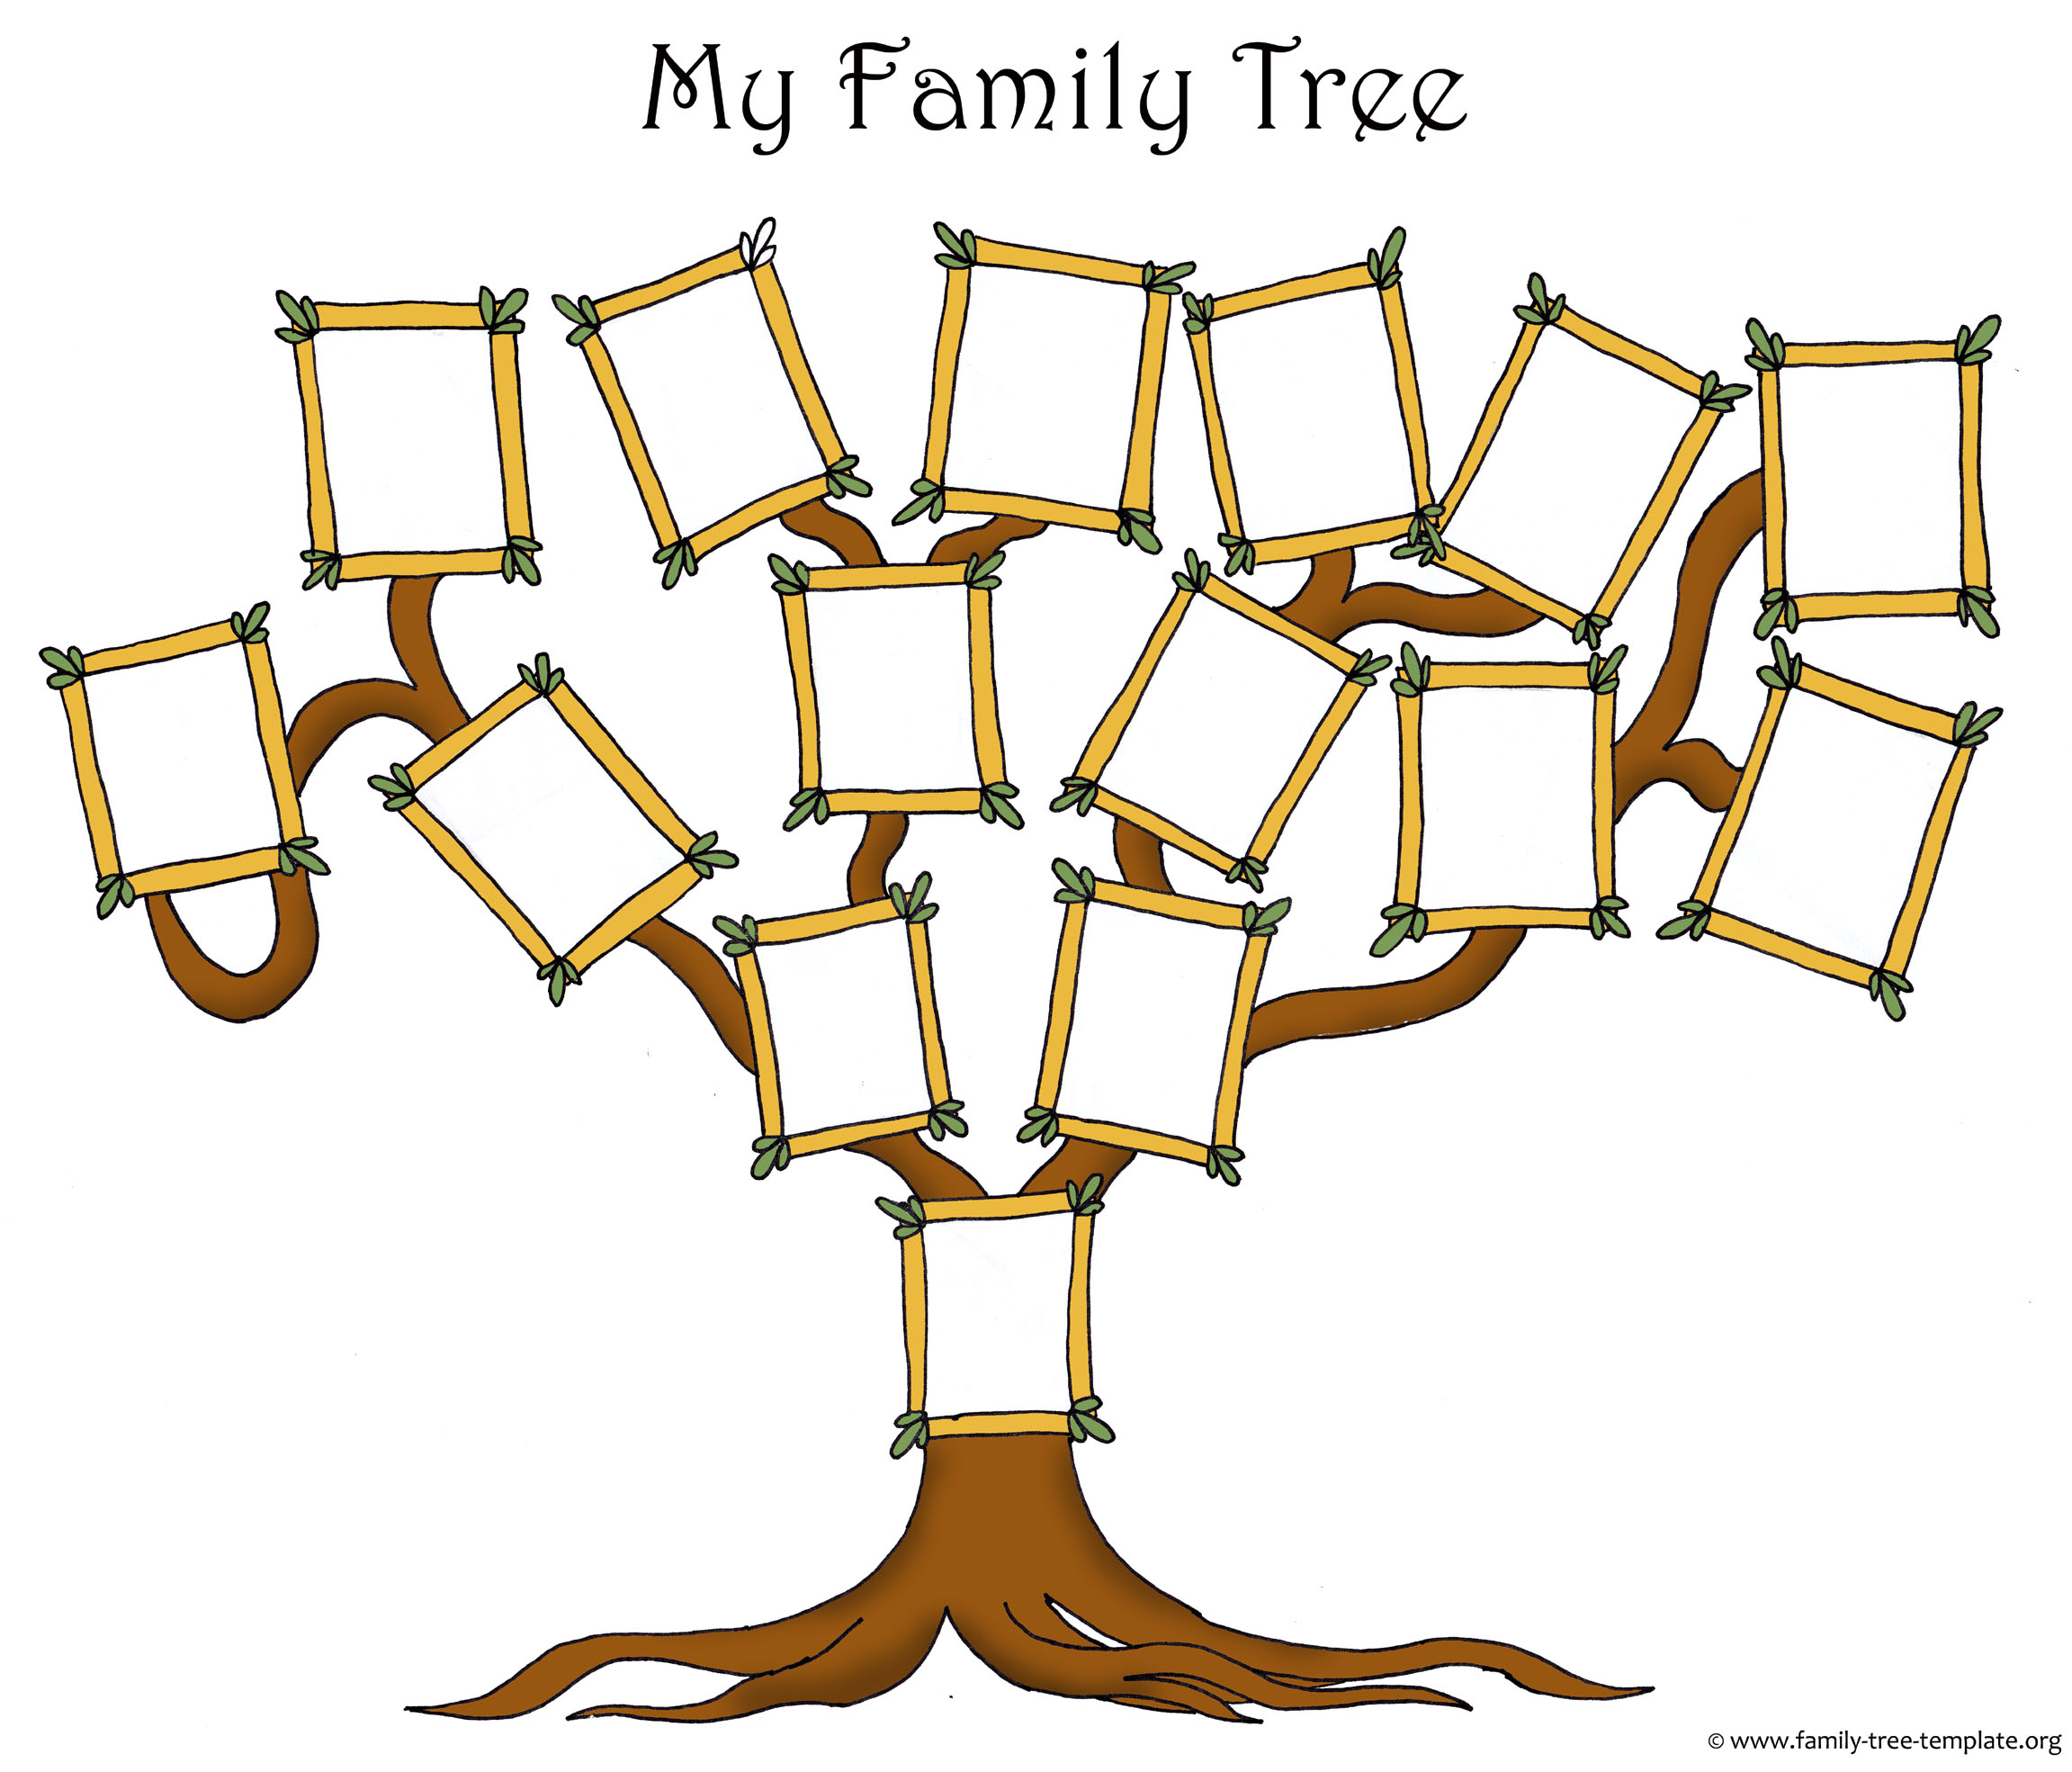 Original free family tree template with picure frames for family.